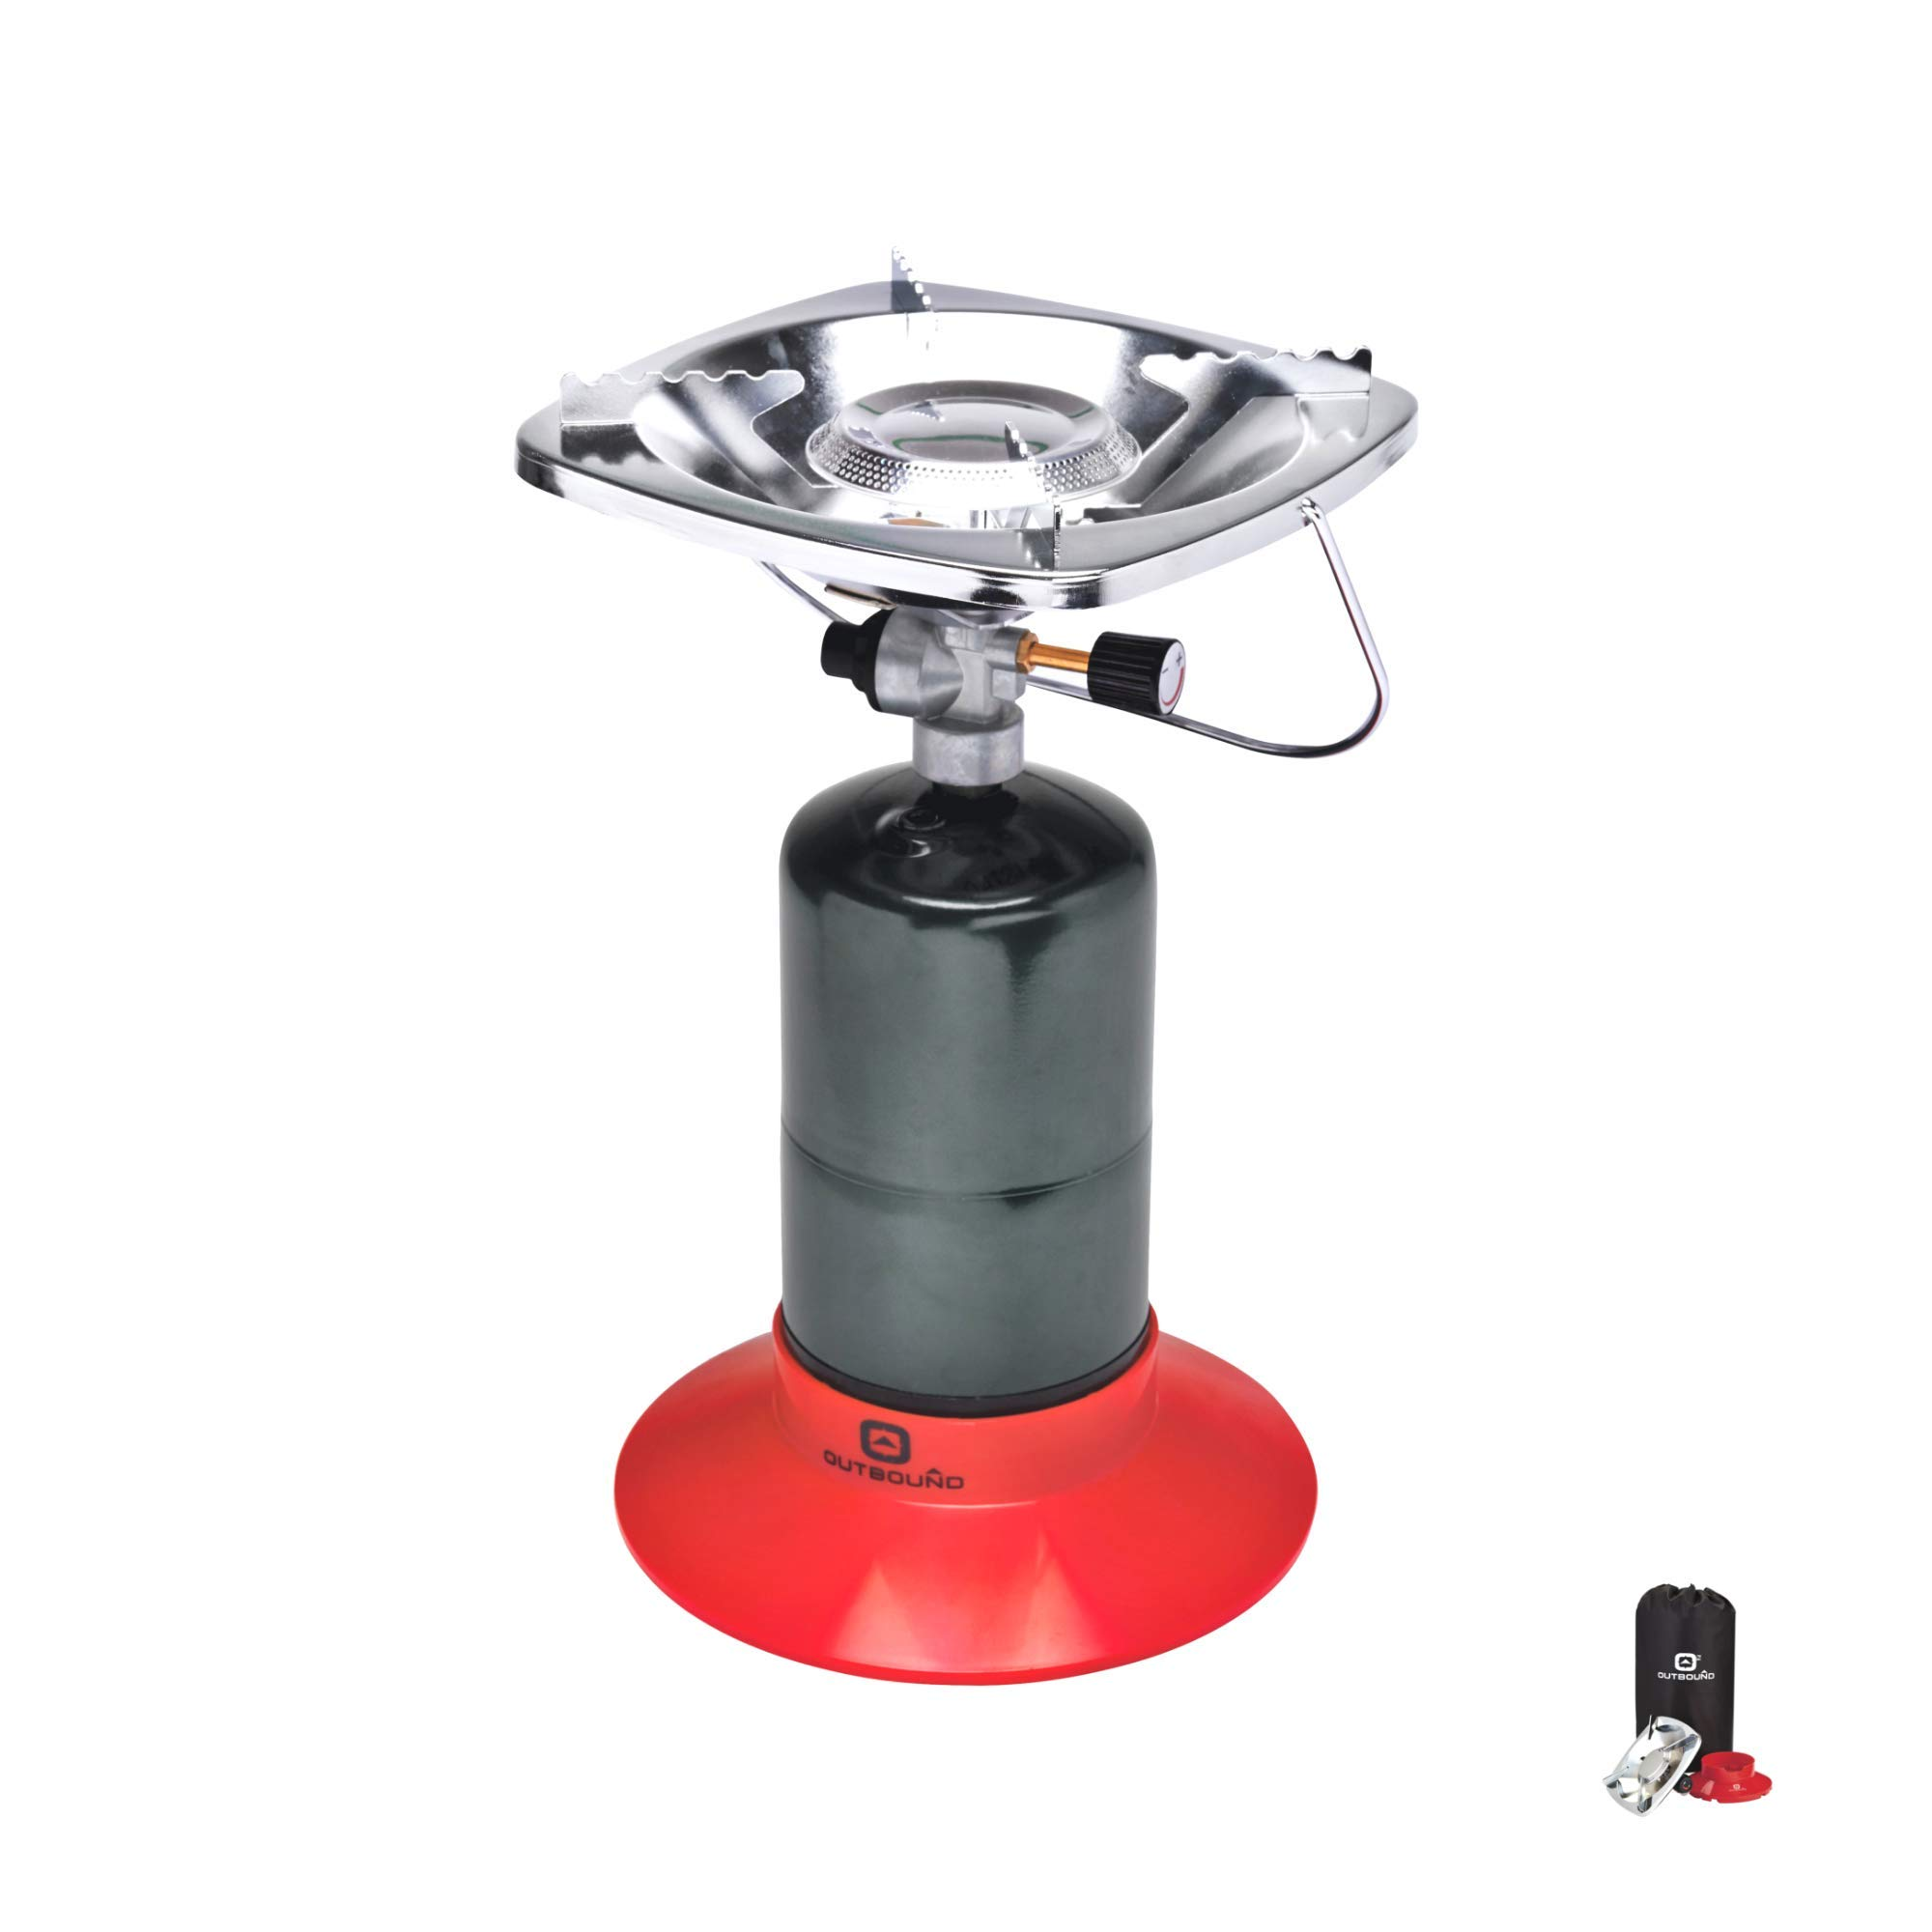 Outbound Propane Stove | Portable Gas Stove Single Burner | Perfect Bottletop Camp Stove for Backpacking, Camping, Fishing, and Outdoor Cooking by Outbound